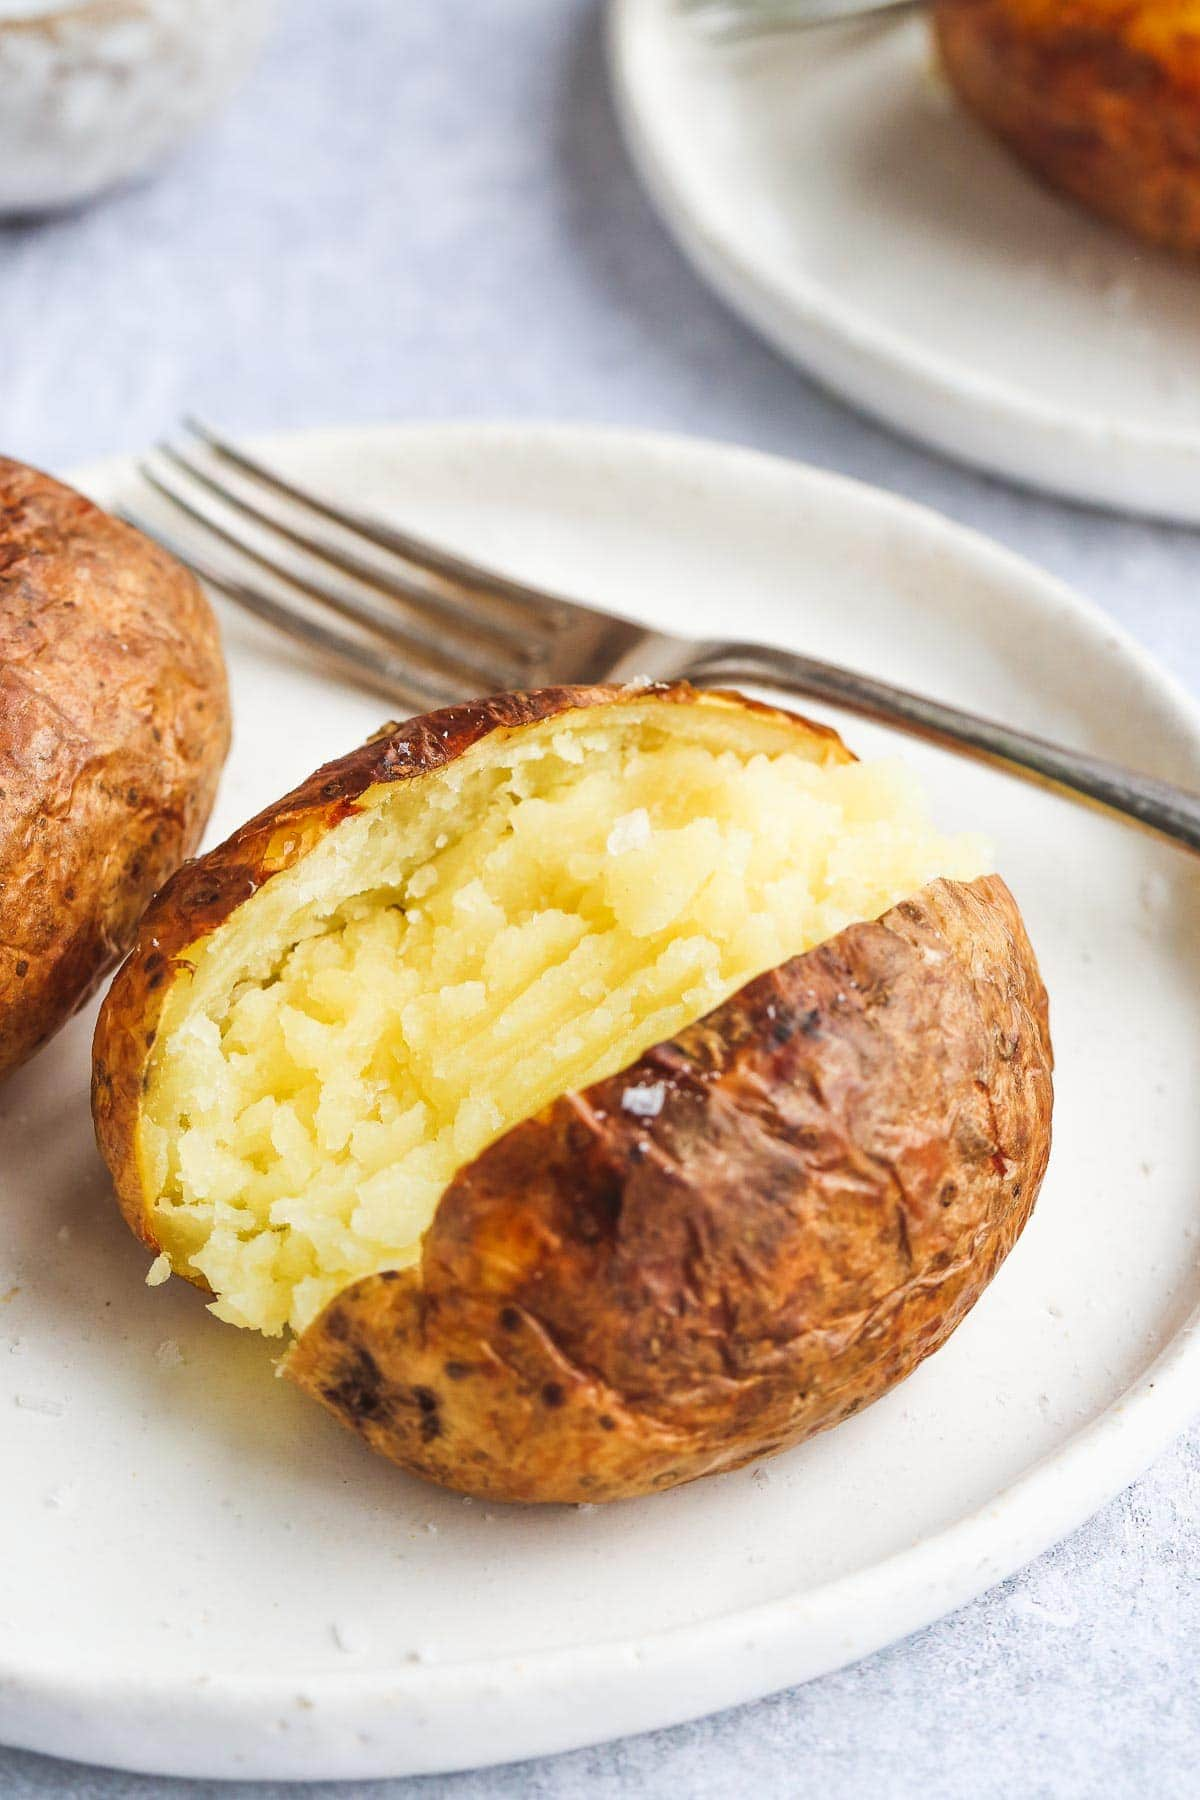 A close up image of air fryer sliced open and fluffed baked potato on a white plate and a fork.